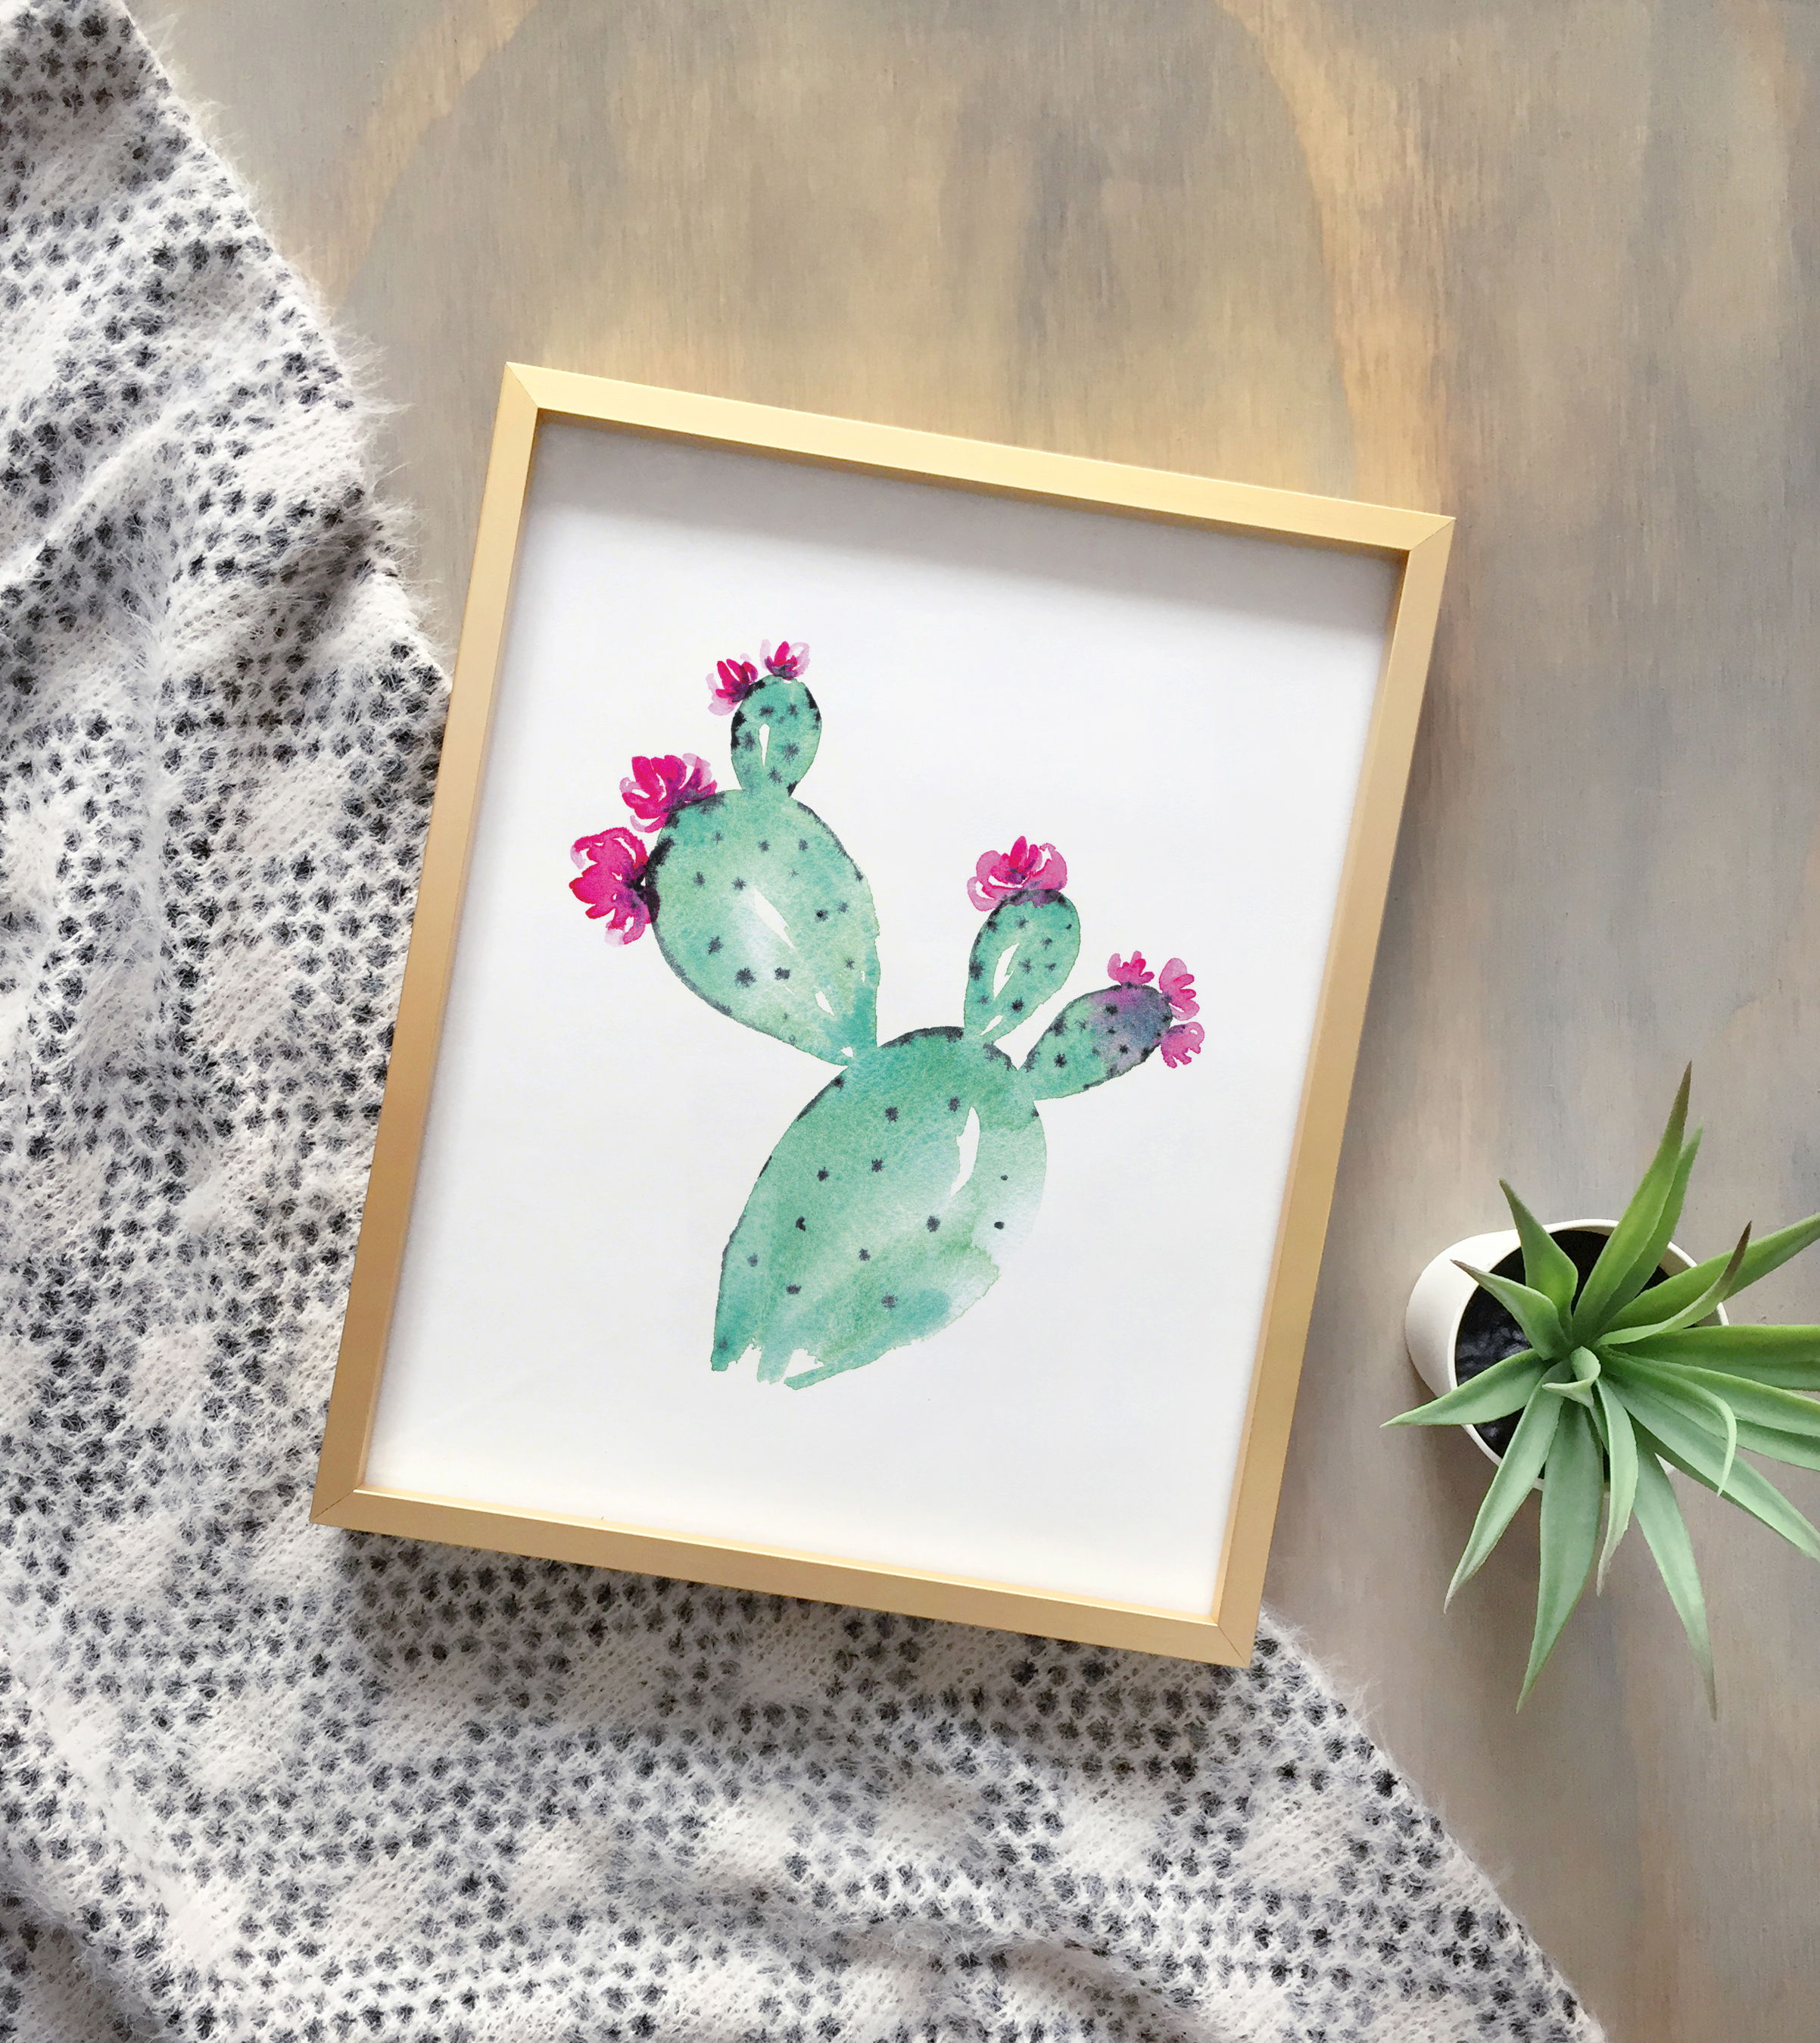 phx-supply-co-art-print-watercolor-prickly-pear.jpg